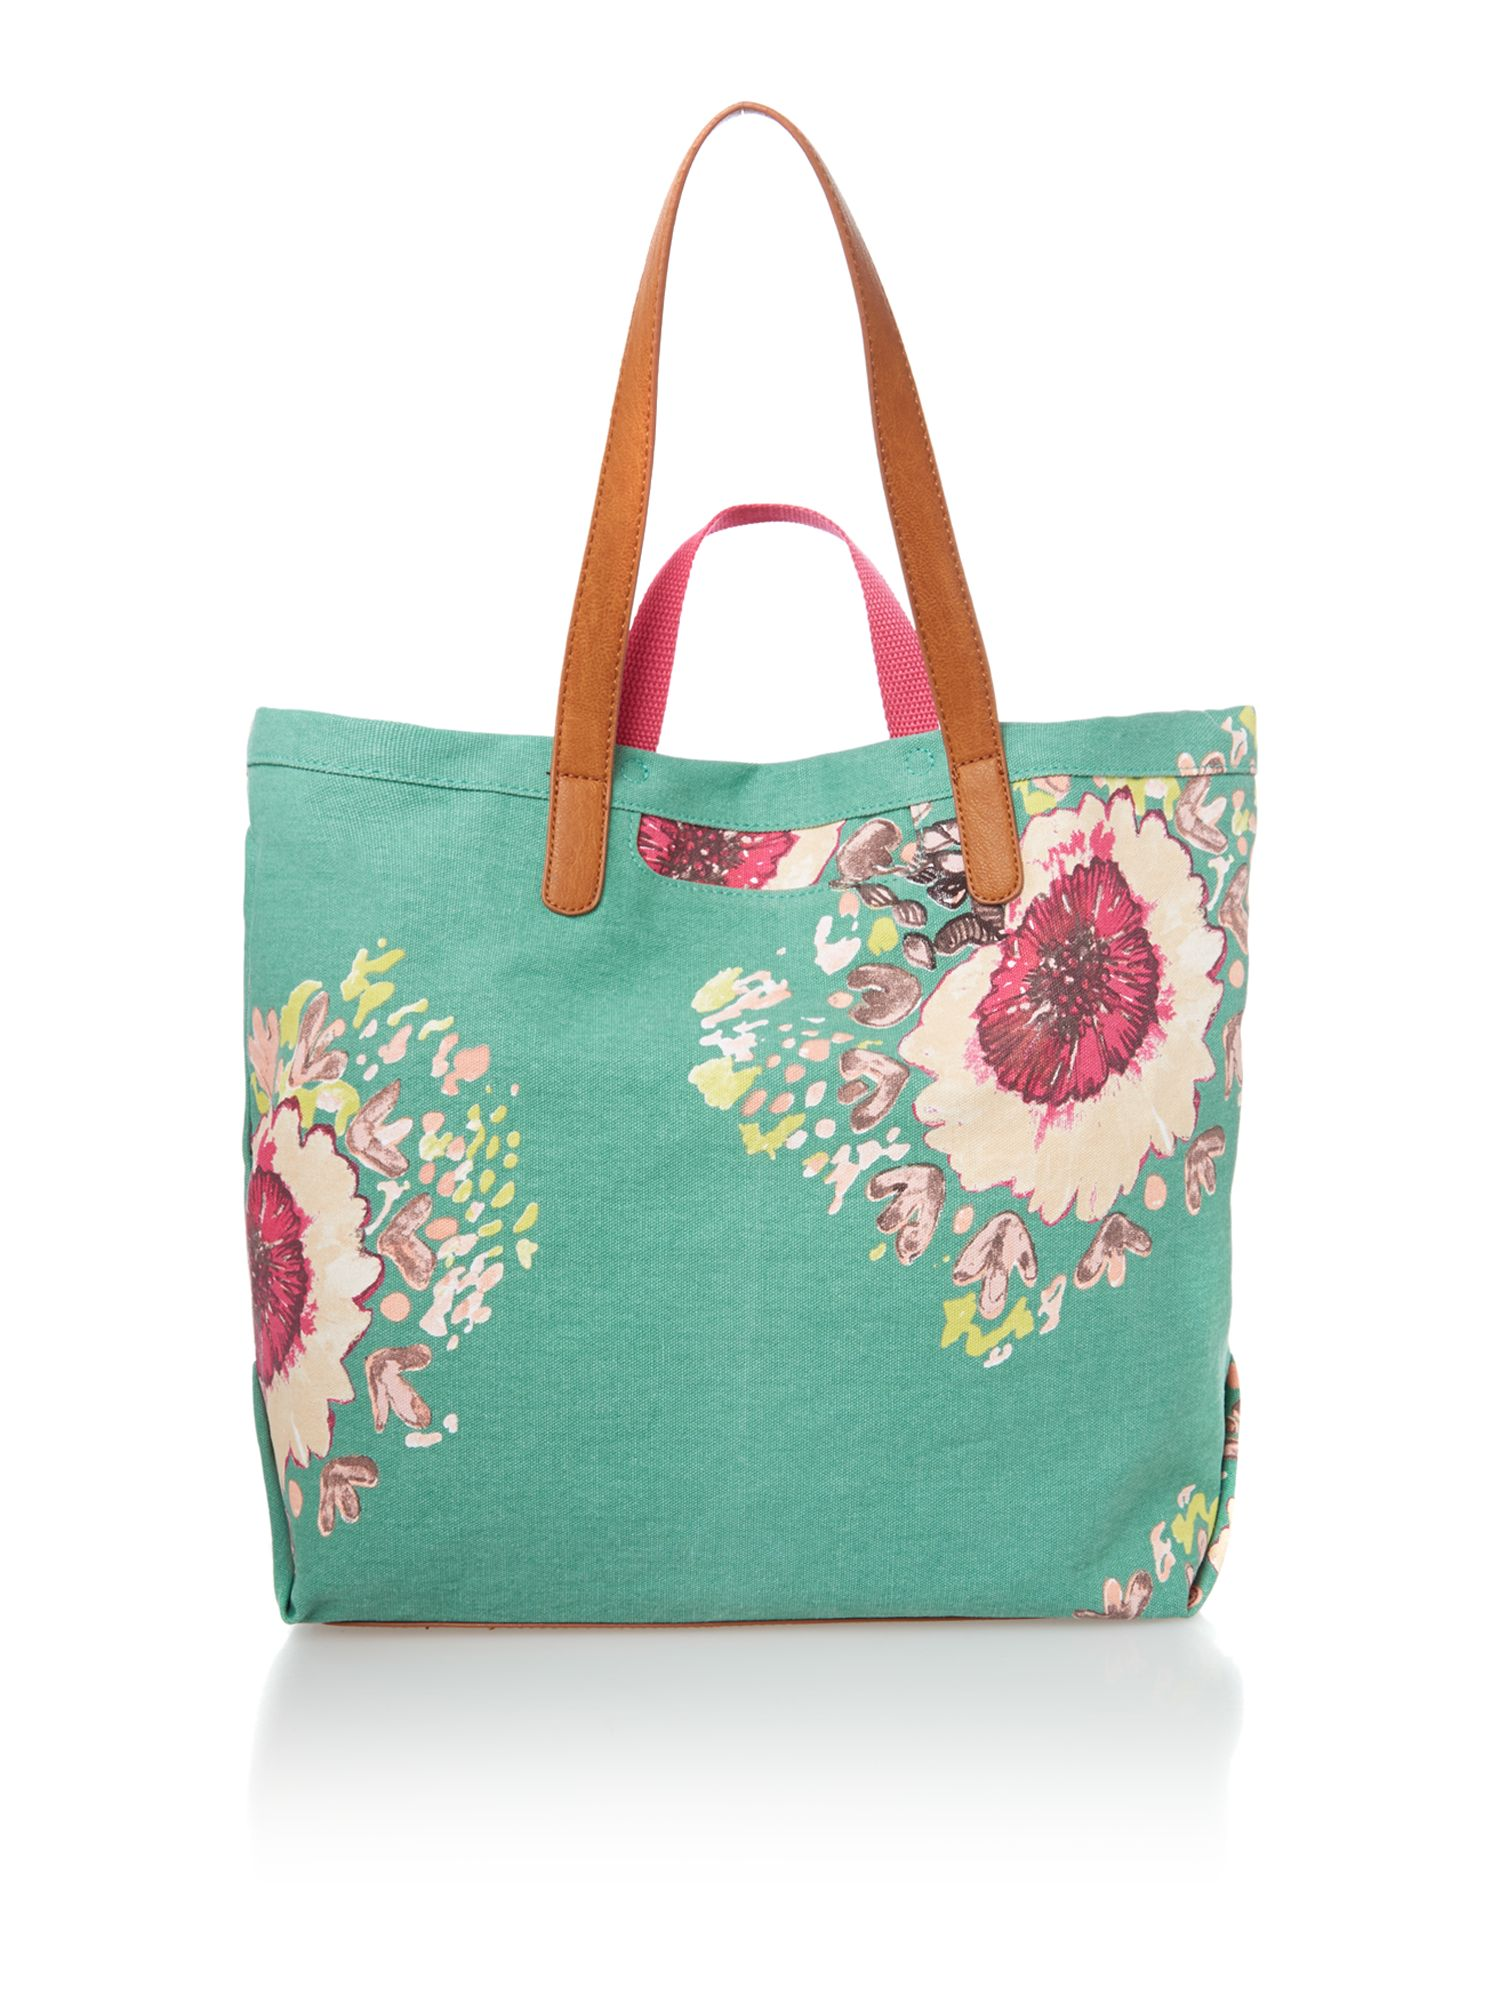 Cara green tote bag